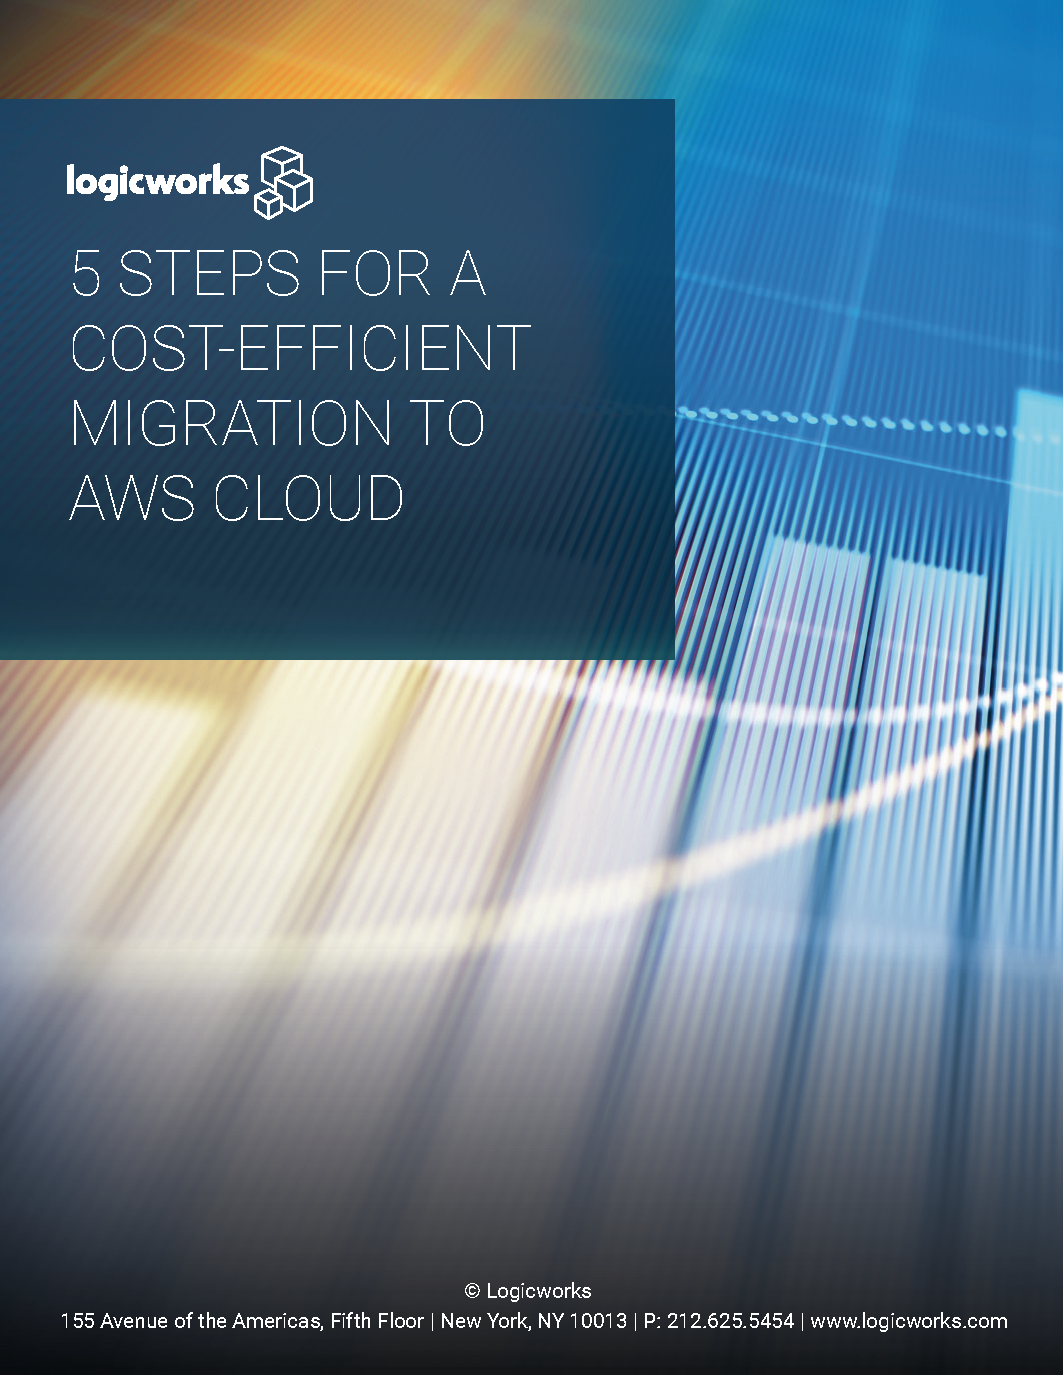 Logicworks eBook - 5 Steps for a Cost-Efficient Migration to AWS